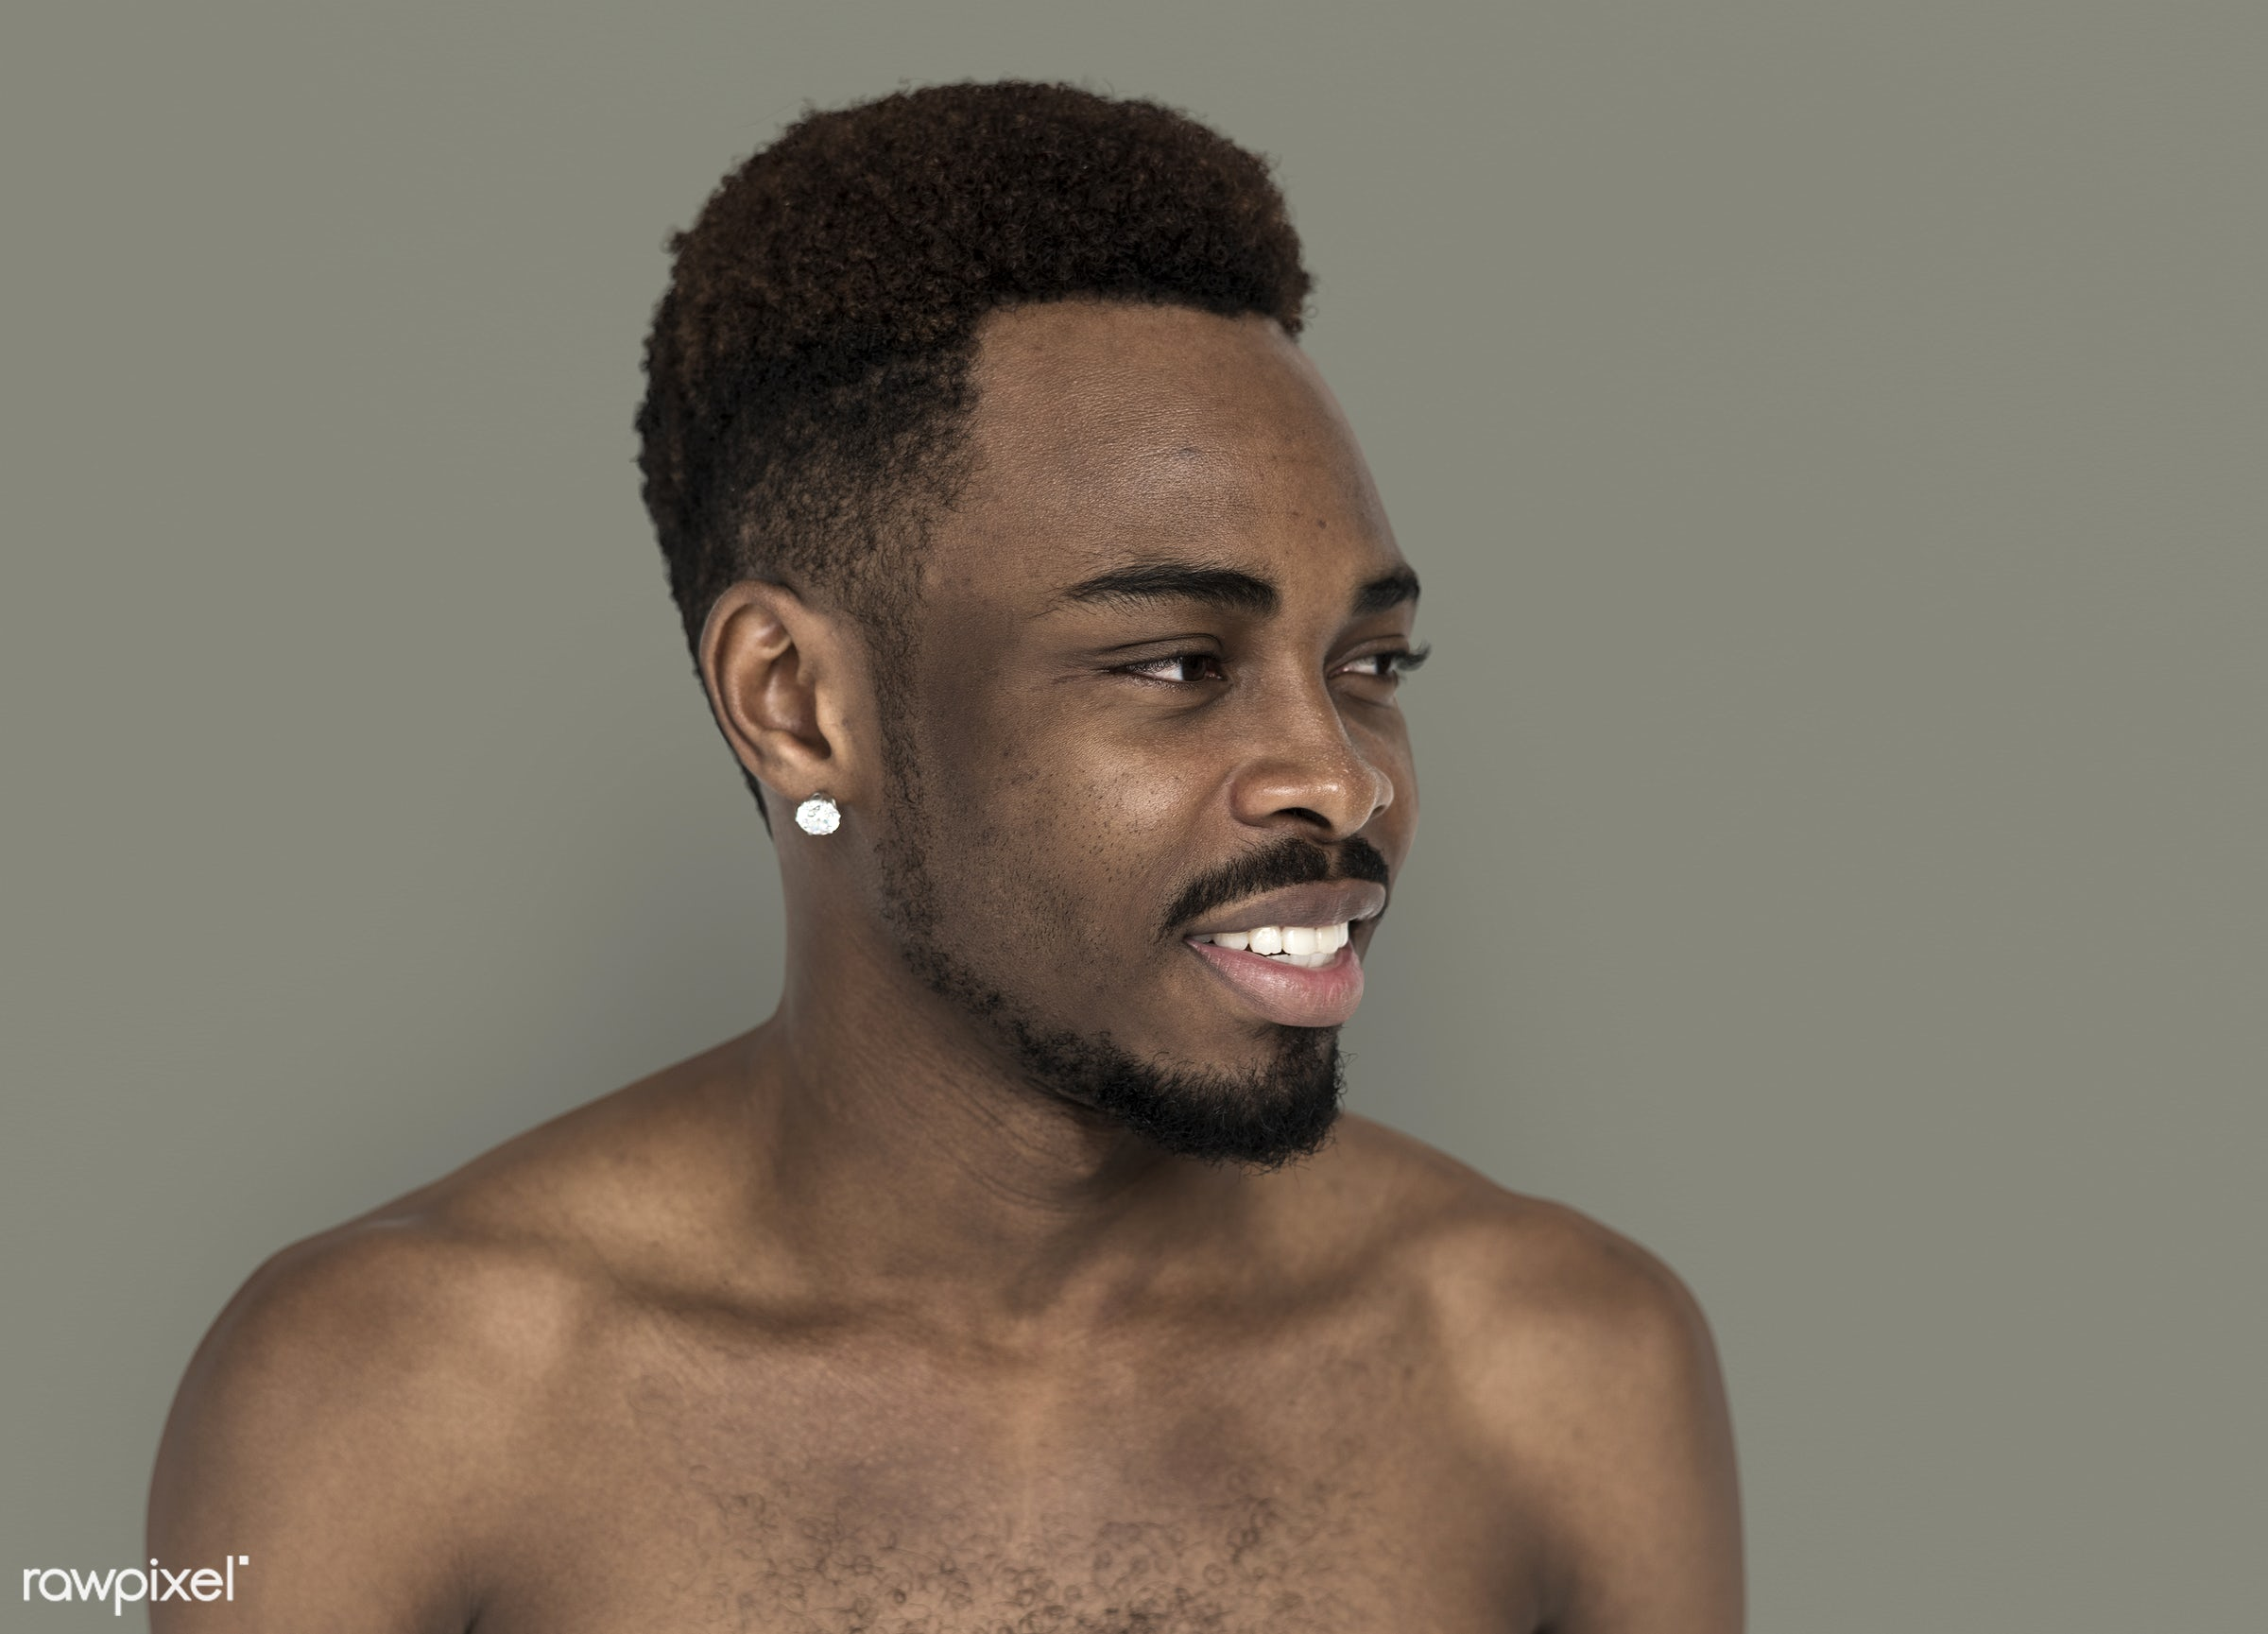 expression, studio, body, face, person, piercing, people, face expression, happy, men, smile, cheerful, man, isolated, male...